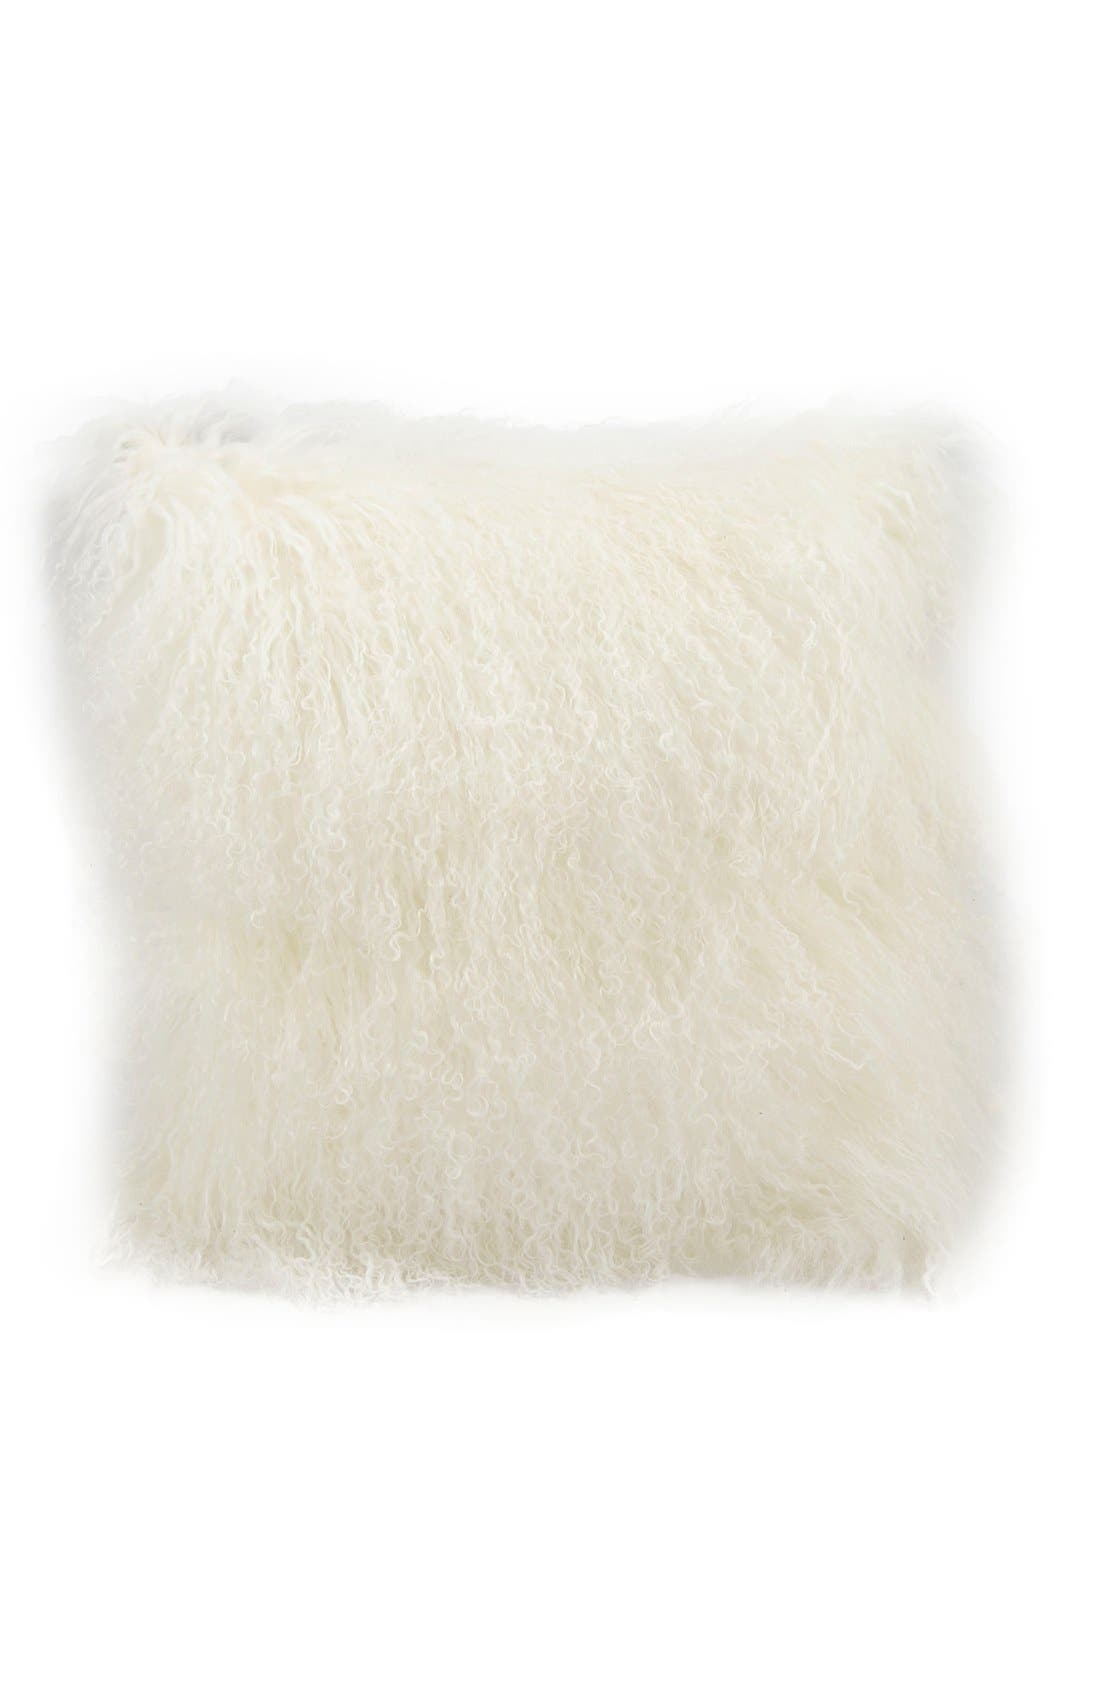 Mina Victory Genuine Tibetan Wool Shearling Pillow